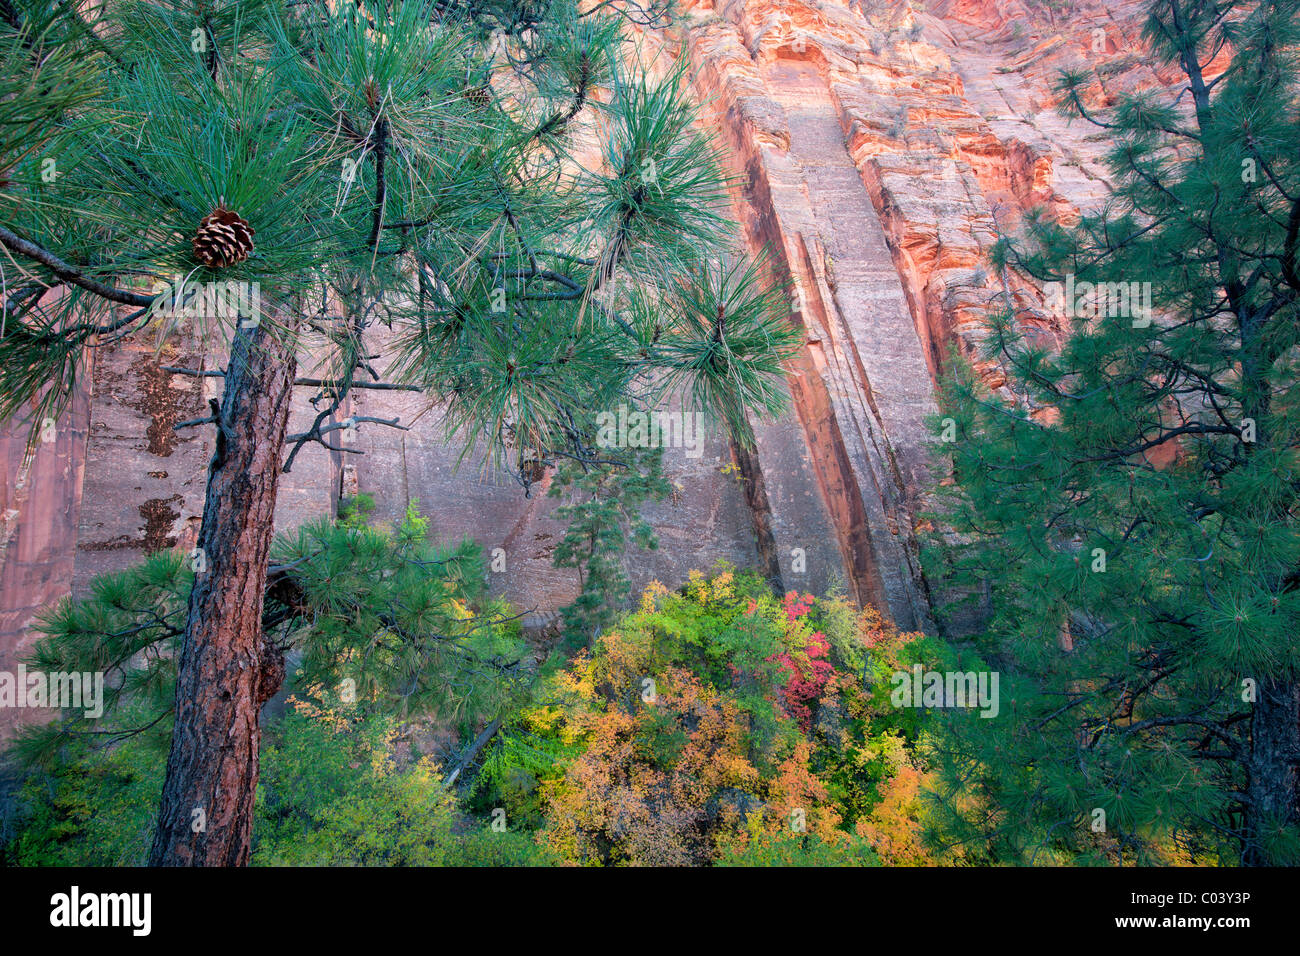 Colorful rock face and fall colored maple trees. Zion National Park, Utah - Stock Image